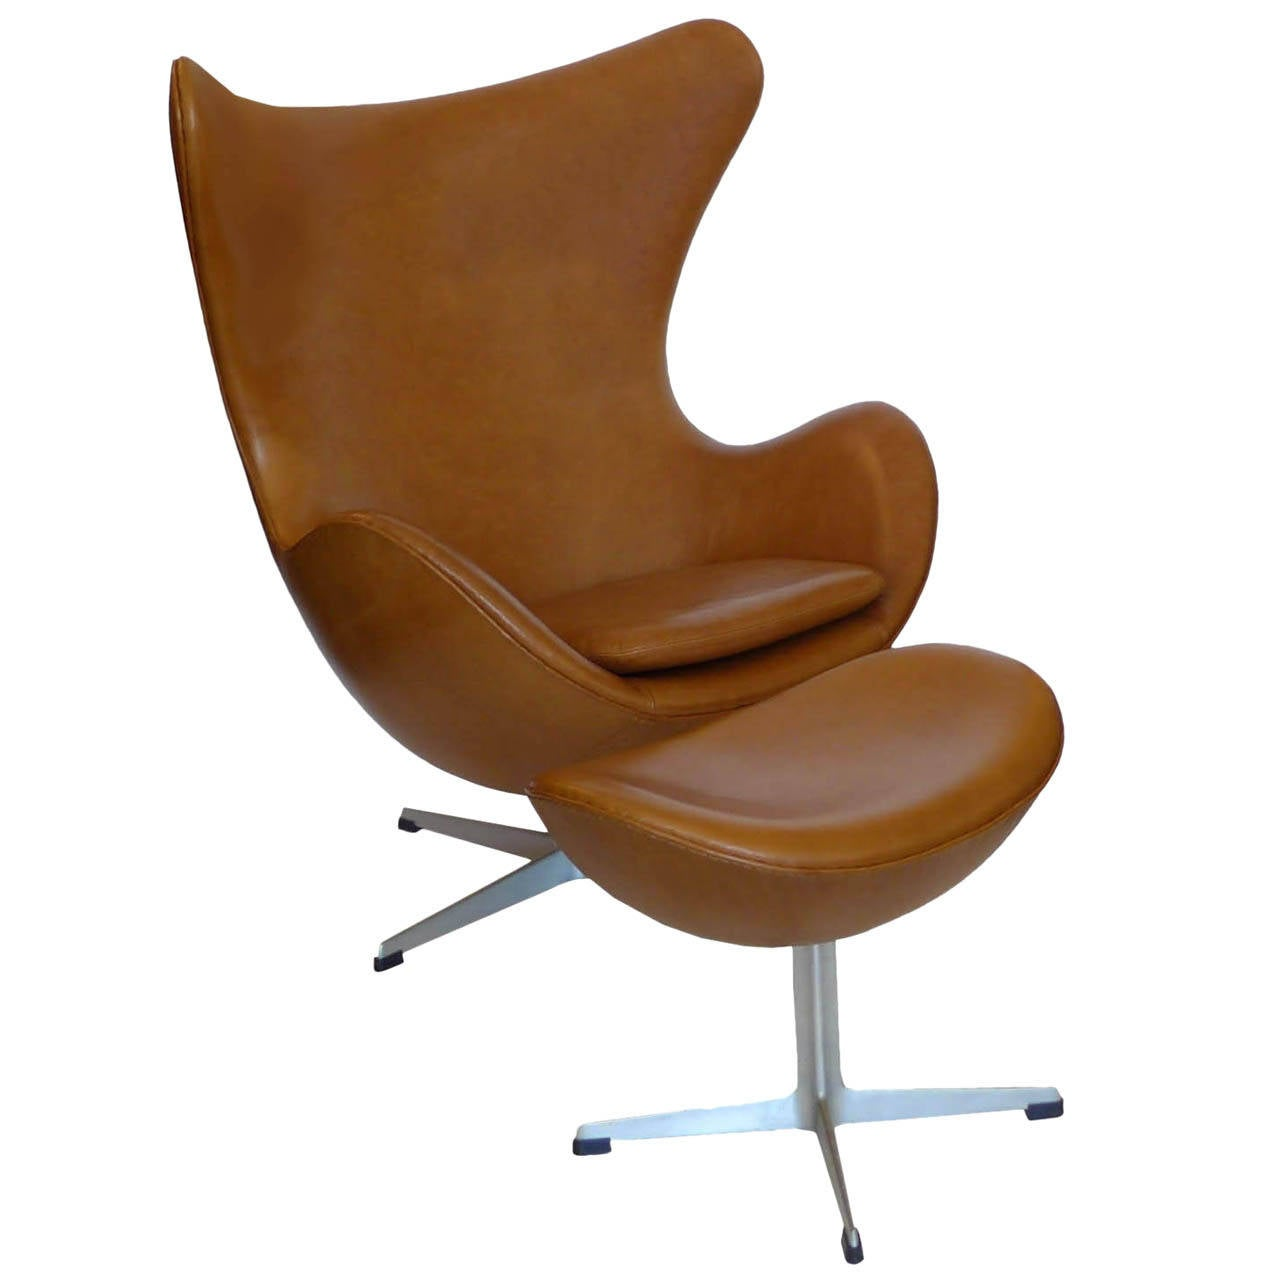 This arne jacobsen swan chair in cognac leather by fritz hansen is no - Original Carmel Tan Egg Chair And Ottoman By Arne Jacobsen For Fritz Hansen 1